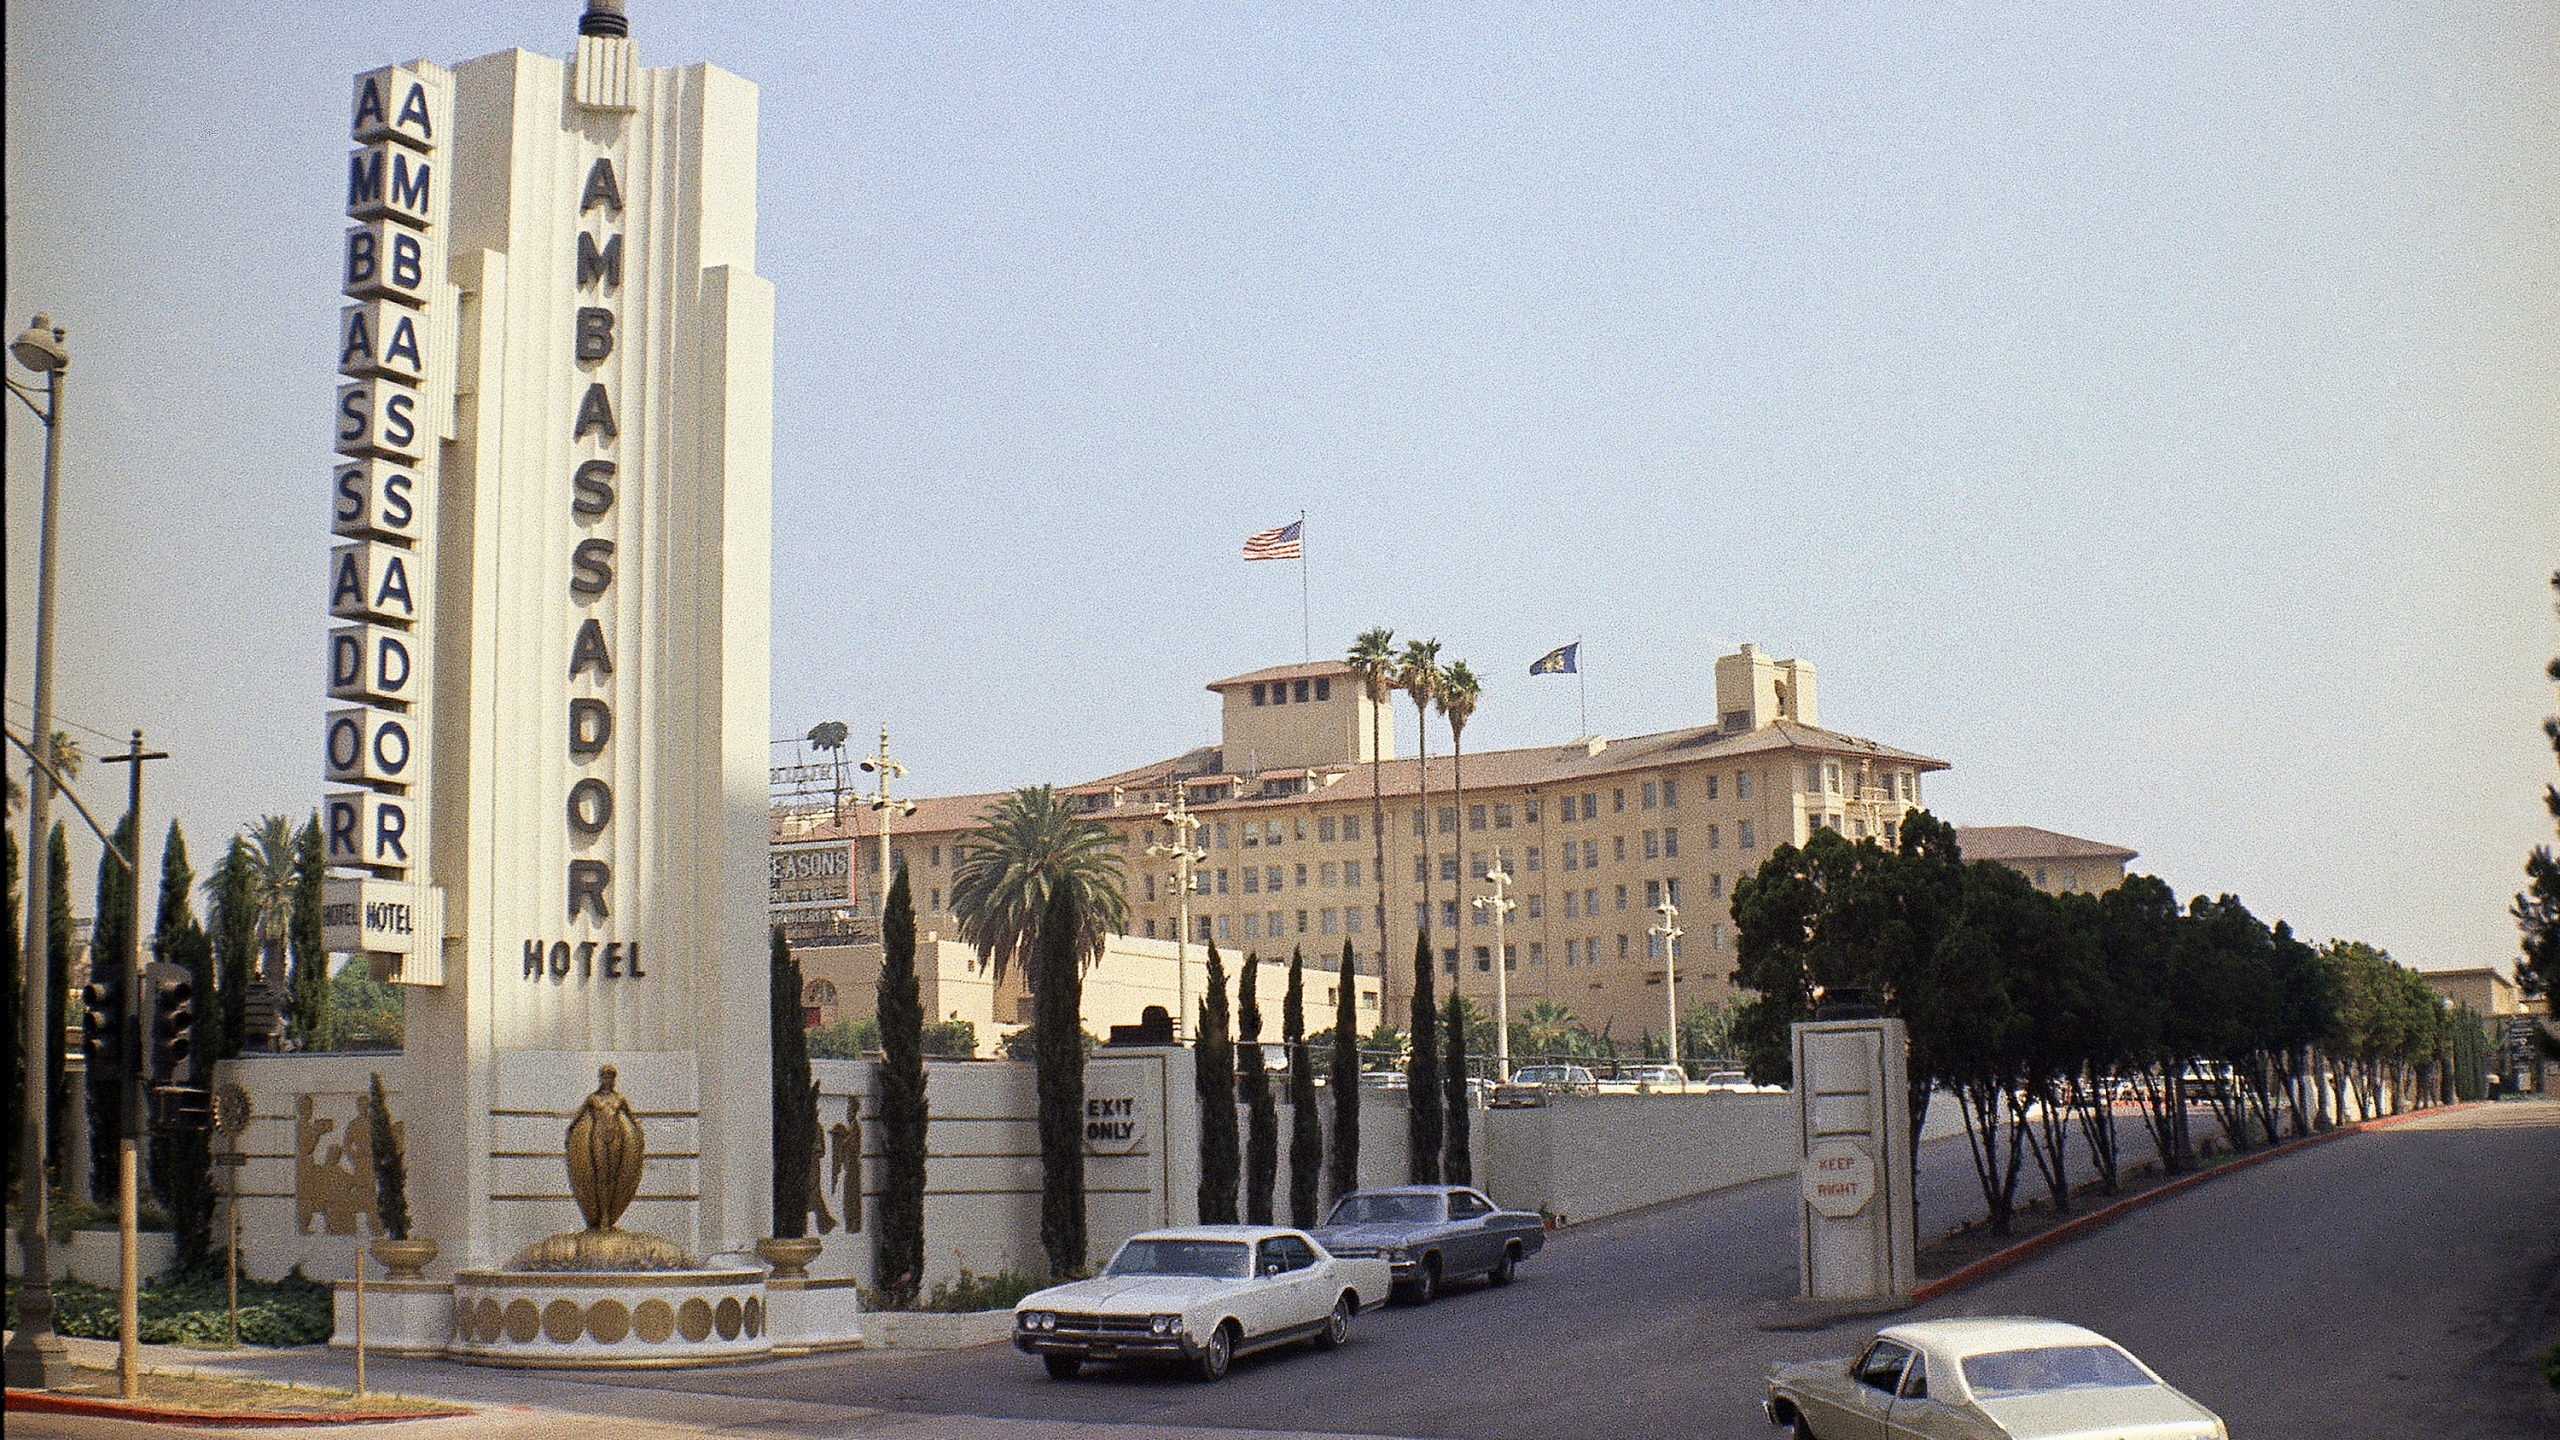 This June 28, 1968, shows the main entrance to the Ambassador Hotel in Los Angeles, where presidents slept, Robert Kennedy was assassinated in 1968 and Mary Pickford collected her Oscar for best actress in 1930 and now the site of a public-school complex. Opened in 1921 and designed by Myron Hunt, with later renovations by African American architect Paul Revere Williams, the Ambassador Hotel was one of Los Angeles' defining historic sites. (AP Photo/David F. Smith, File)